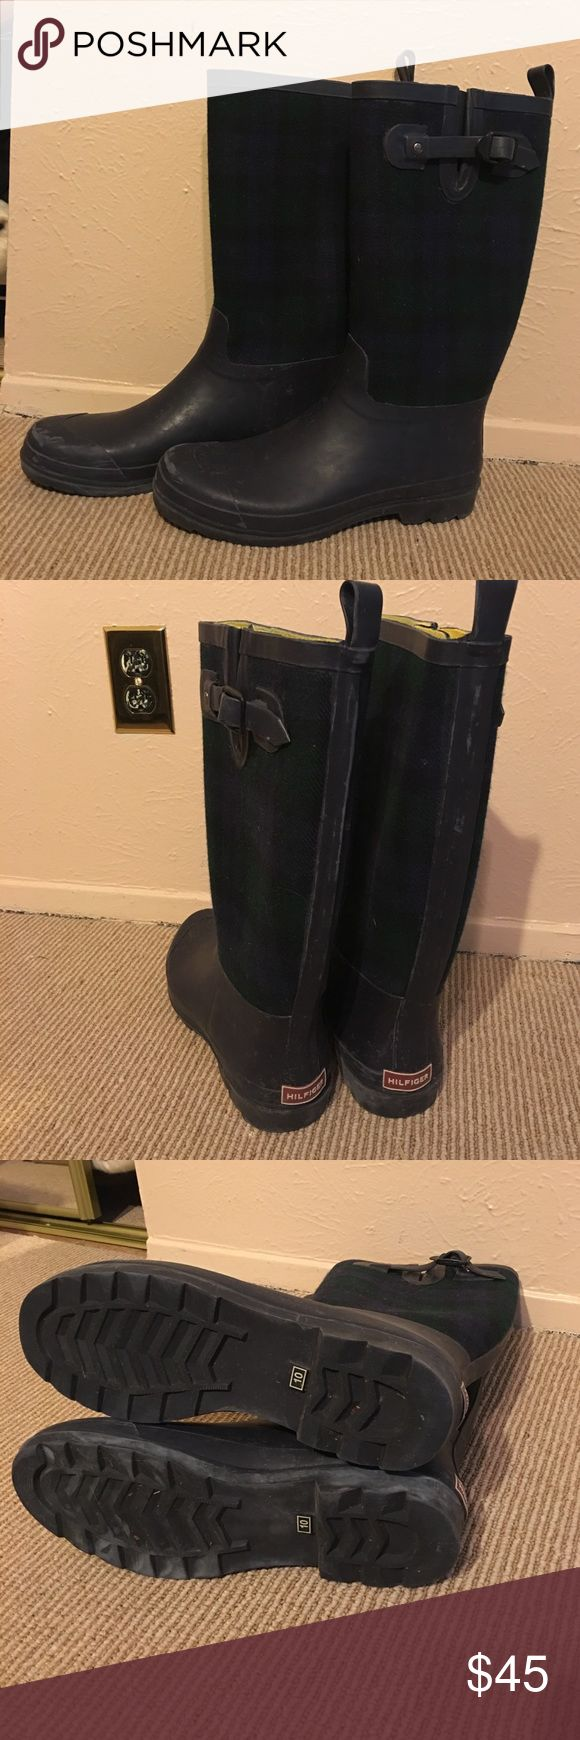 Tommy Hilfiger rain boots Only worn twice! Like new! Blue and green plaid fabric and navy soles. Yellow inside. Tommy Hilfiger Shoes Winter & Rain Boots